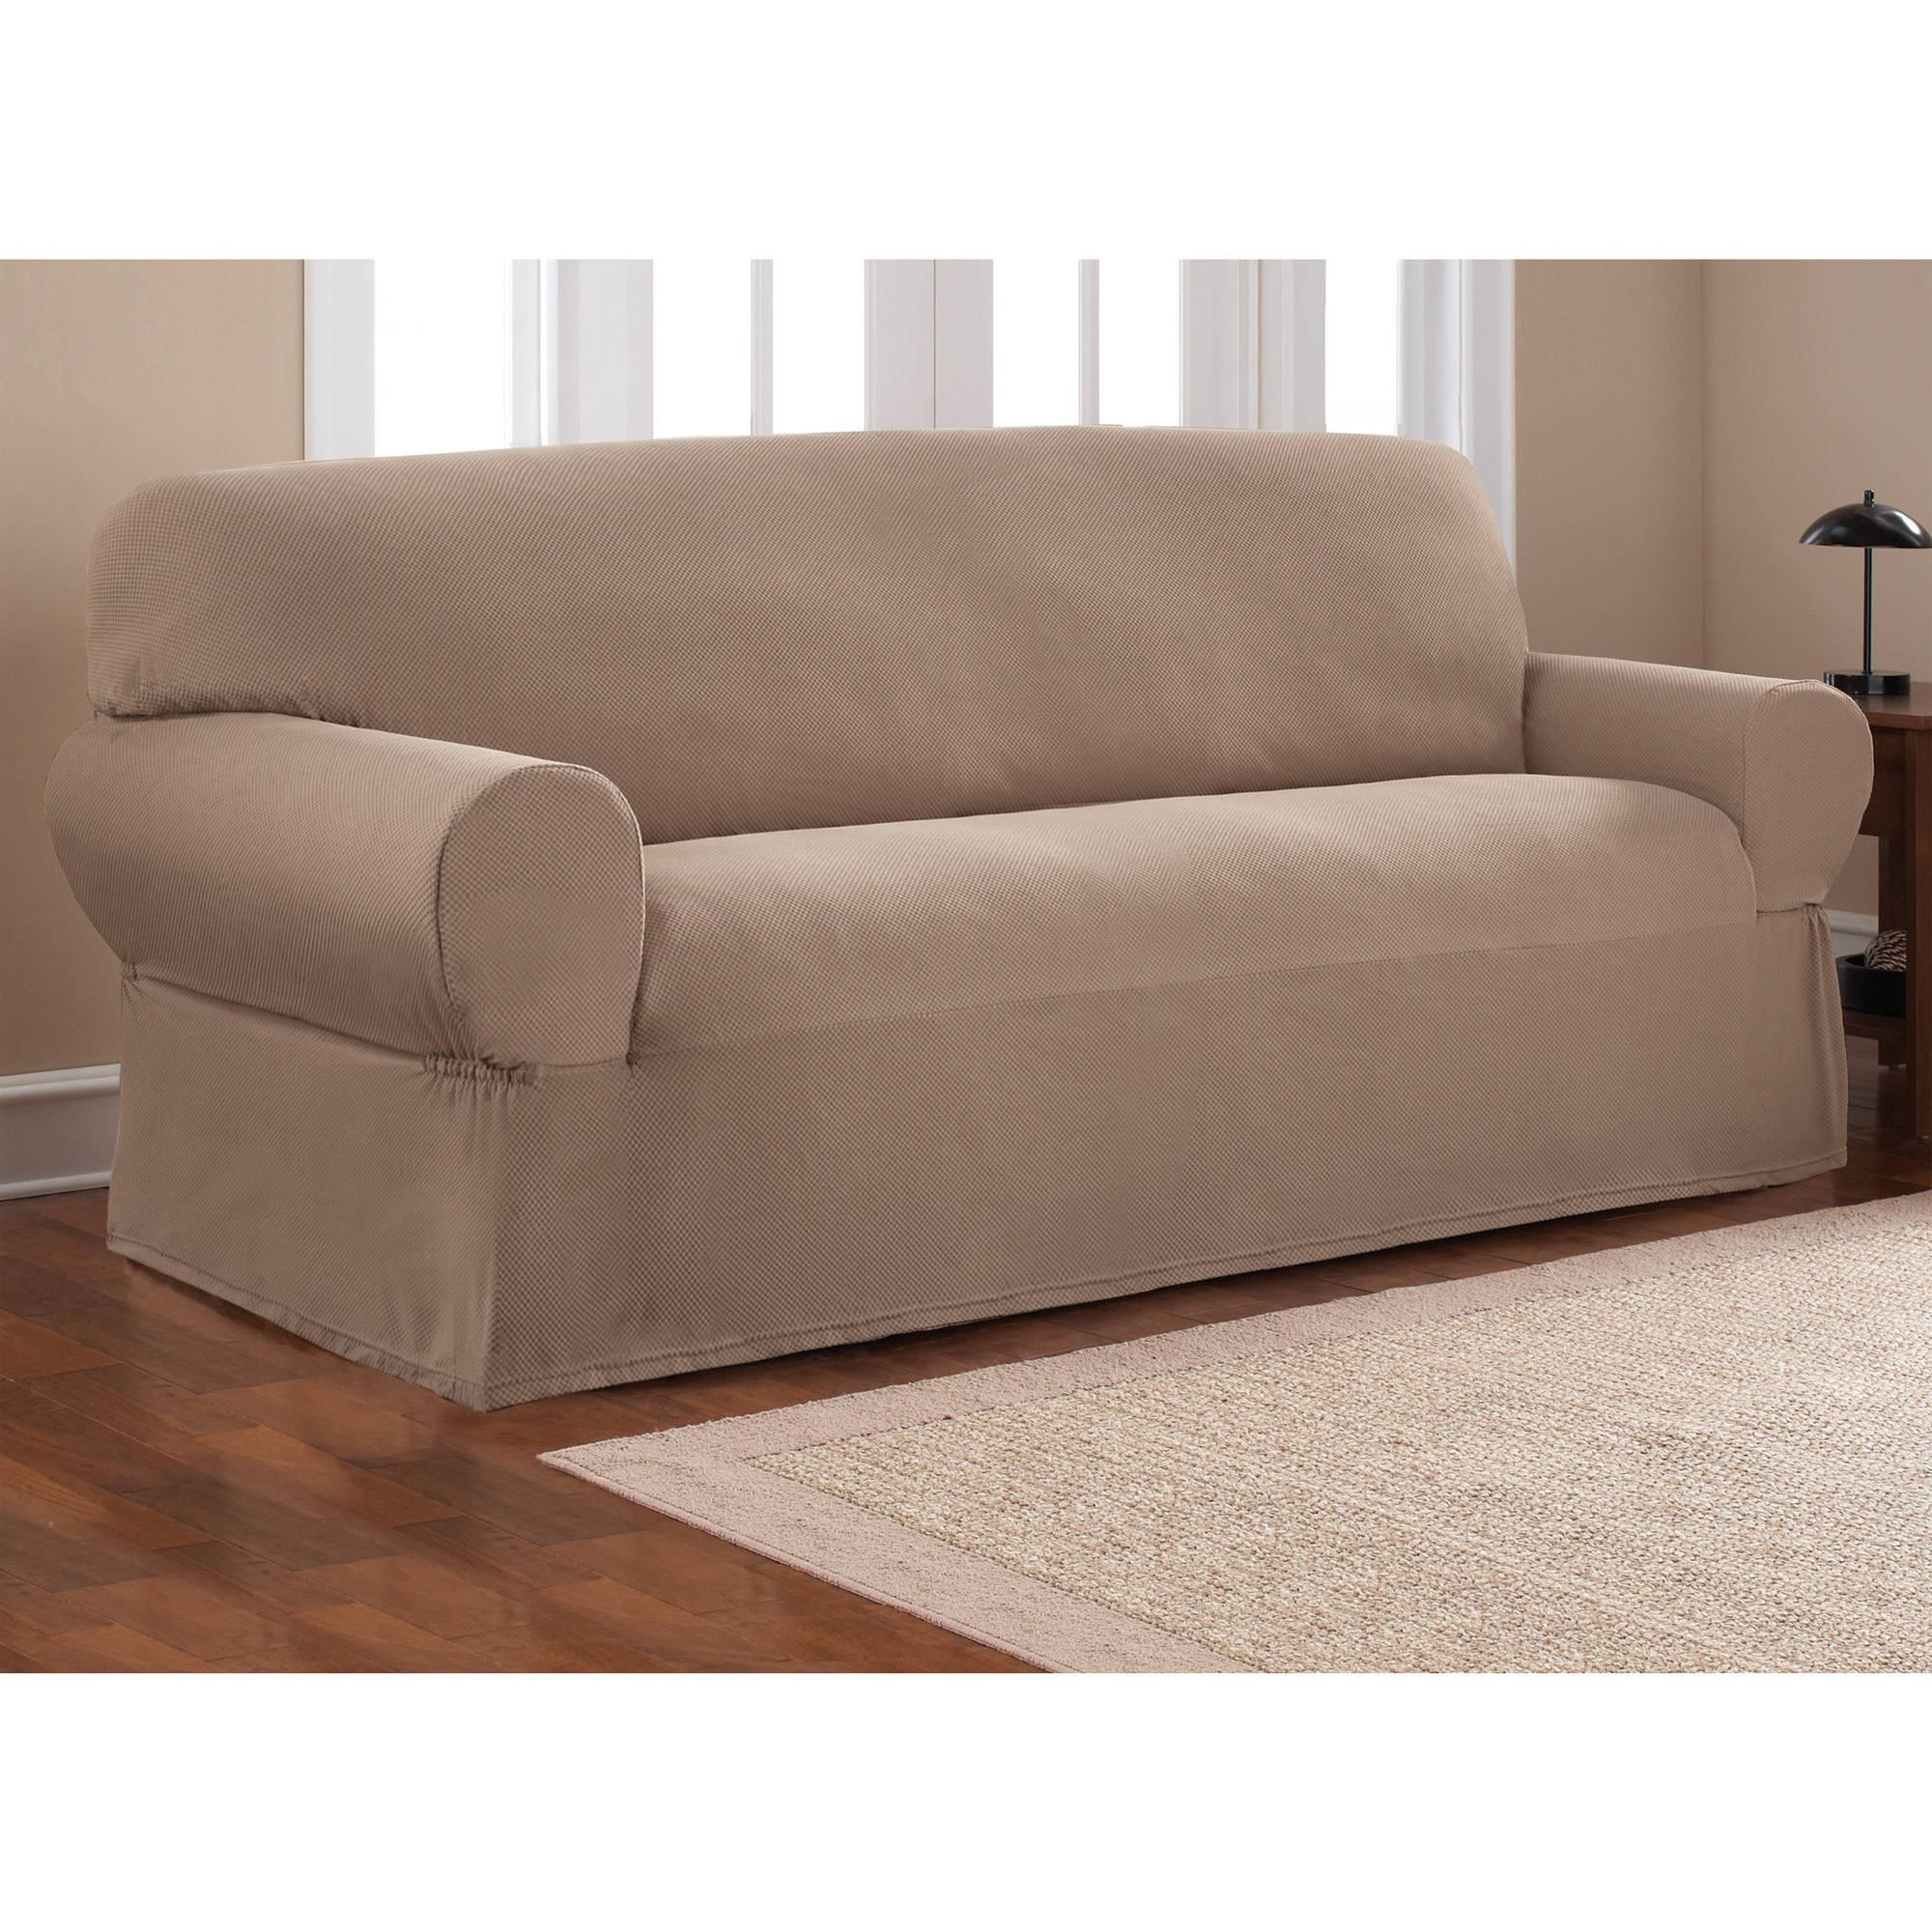 Mainstays 1 Piece Stretch Fabric Sofa Slipcover – Walmart Pertaining To Suede Slipcovers For Sofas (Image 8 of 20)